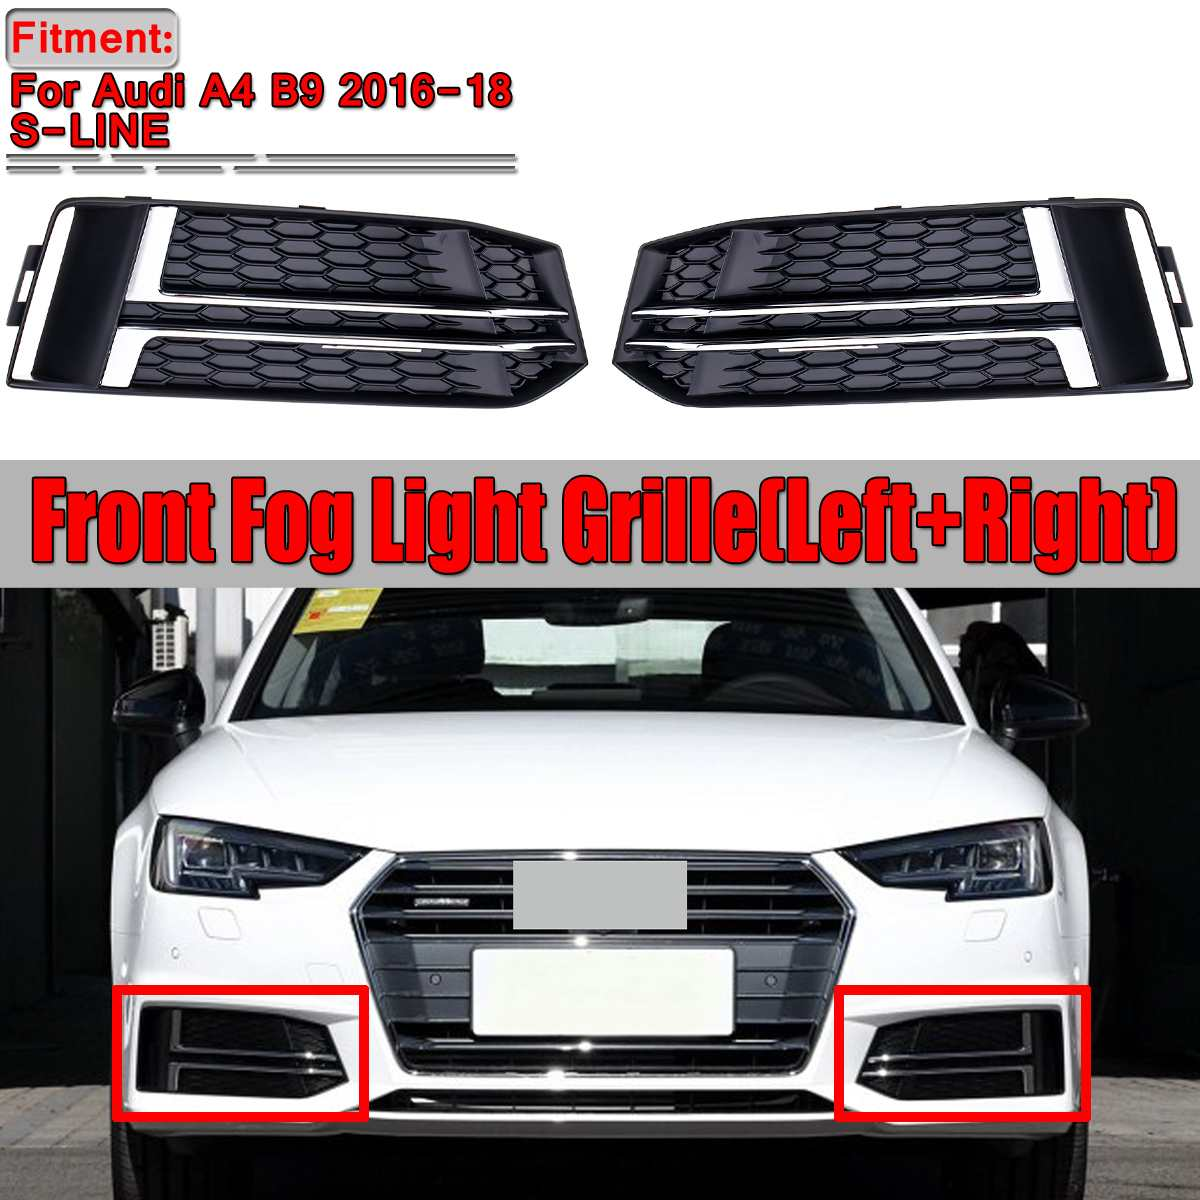 A4 B9 New Pair Car Front Bumper Fog Light Lamp Grille Grill Cover Trim For Audi A4 B9 S-LINE 2016-2018 8W0807681F 8W0807682FA4 B9 New Pair Car Front Bumper Fog Light Lamp Grille Grill Cover Trim For Audi A4 B9 S-LINE 2016-2018 8W0807681F 8W0807682F